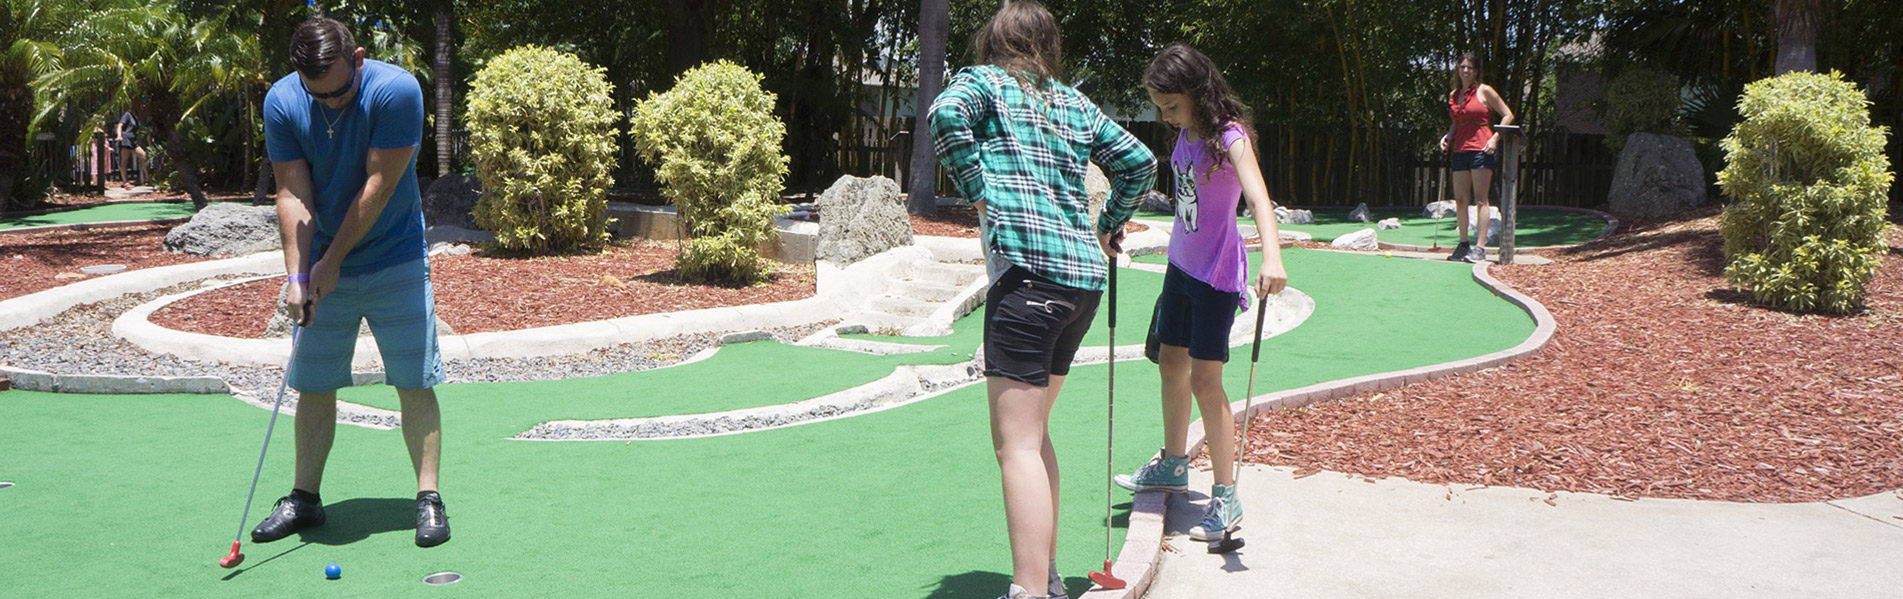 Putt Putt Golf Melbourne Florida